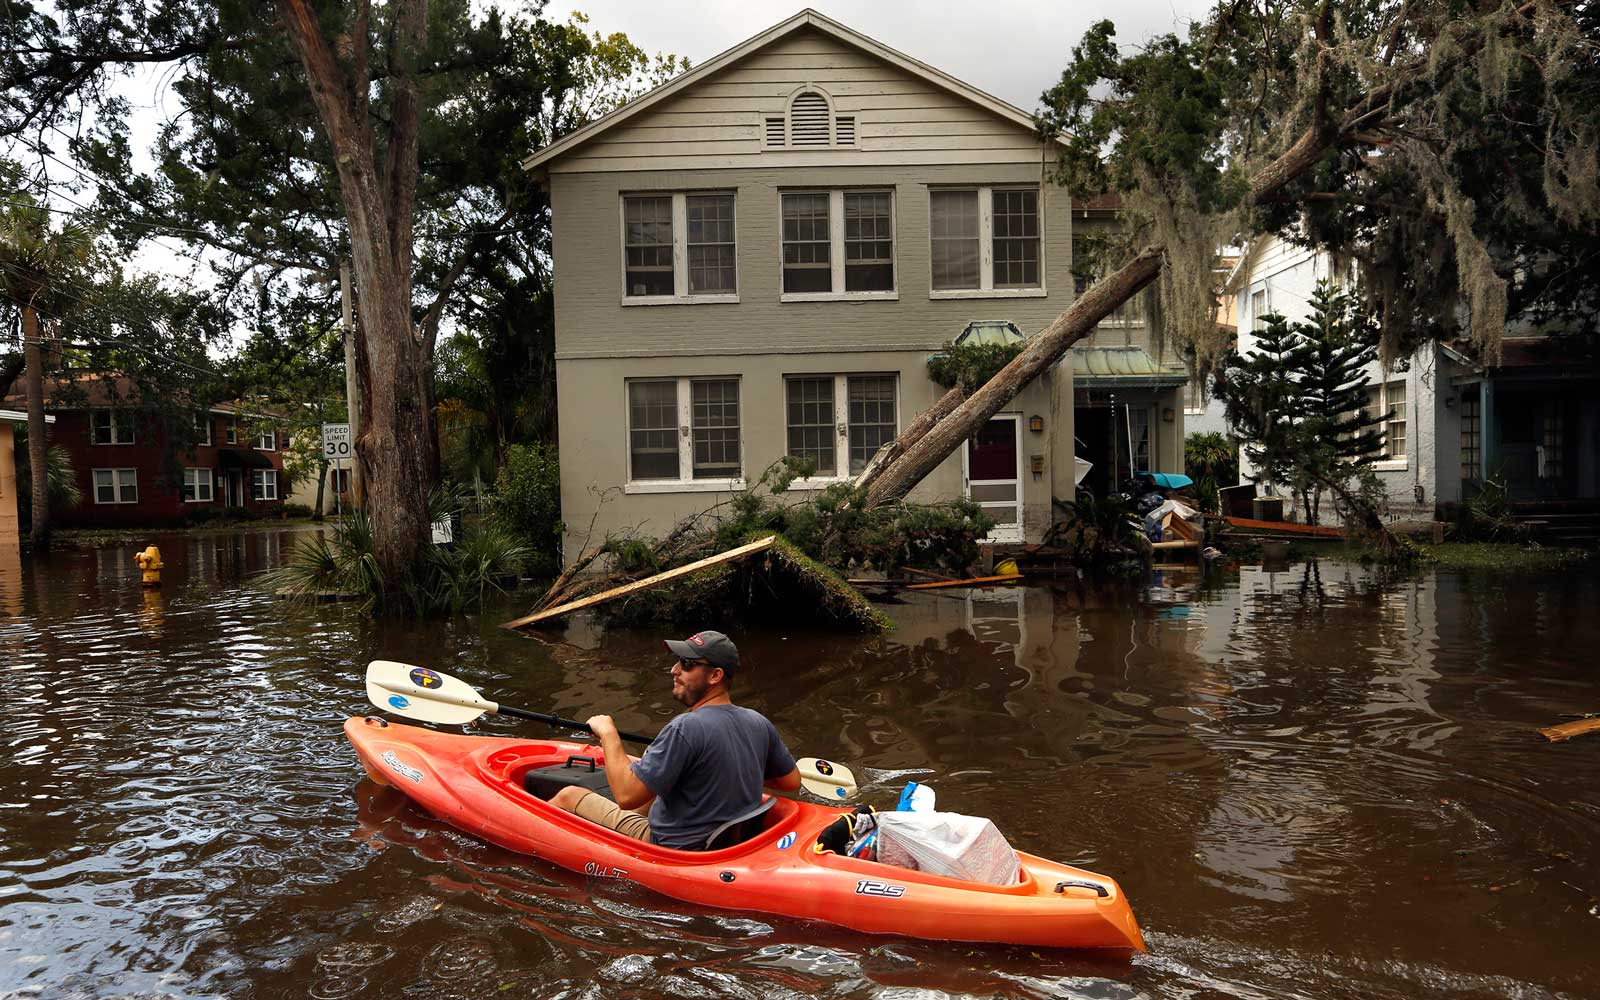 Joshua Young takes some of his personal belonging out by kayak after flooding hit his apartment building during Hurricane Irma on September 12, 2017 in the San Marco area of Jacksonville, Florida